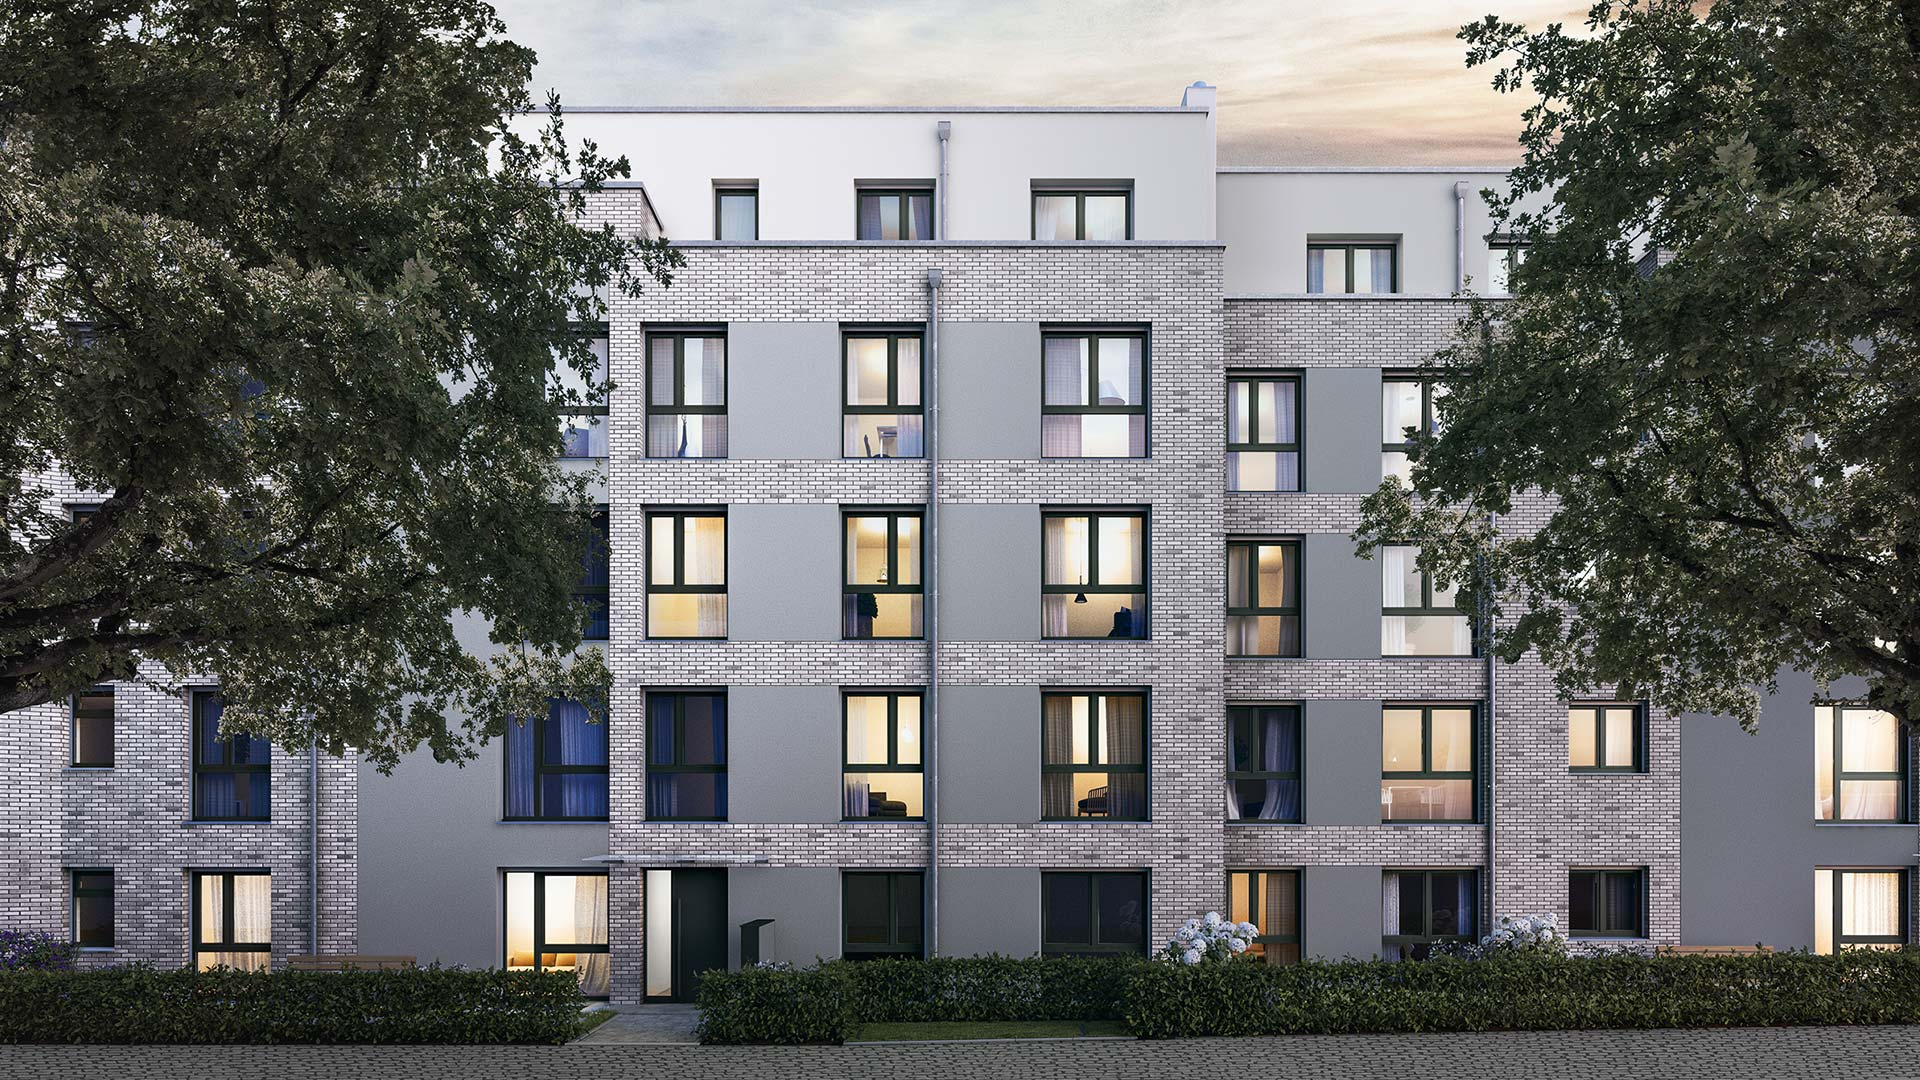 BAHRENGOLD: new residential building with a clinker facade typical for Hamburg